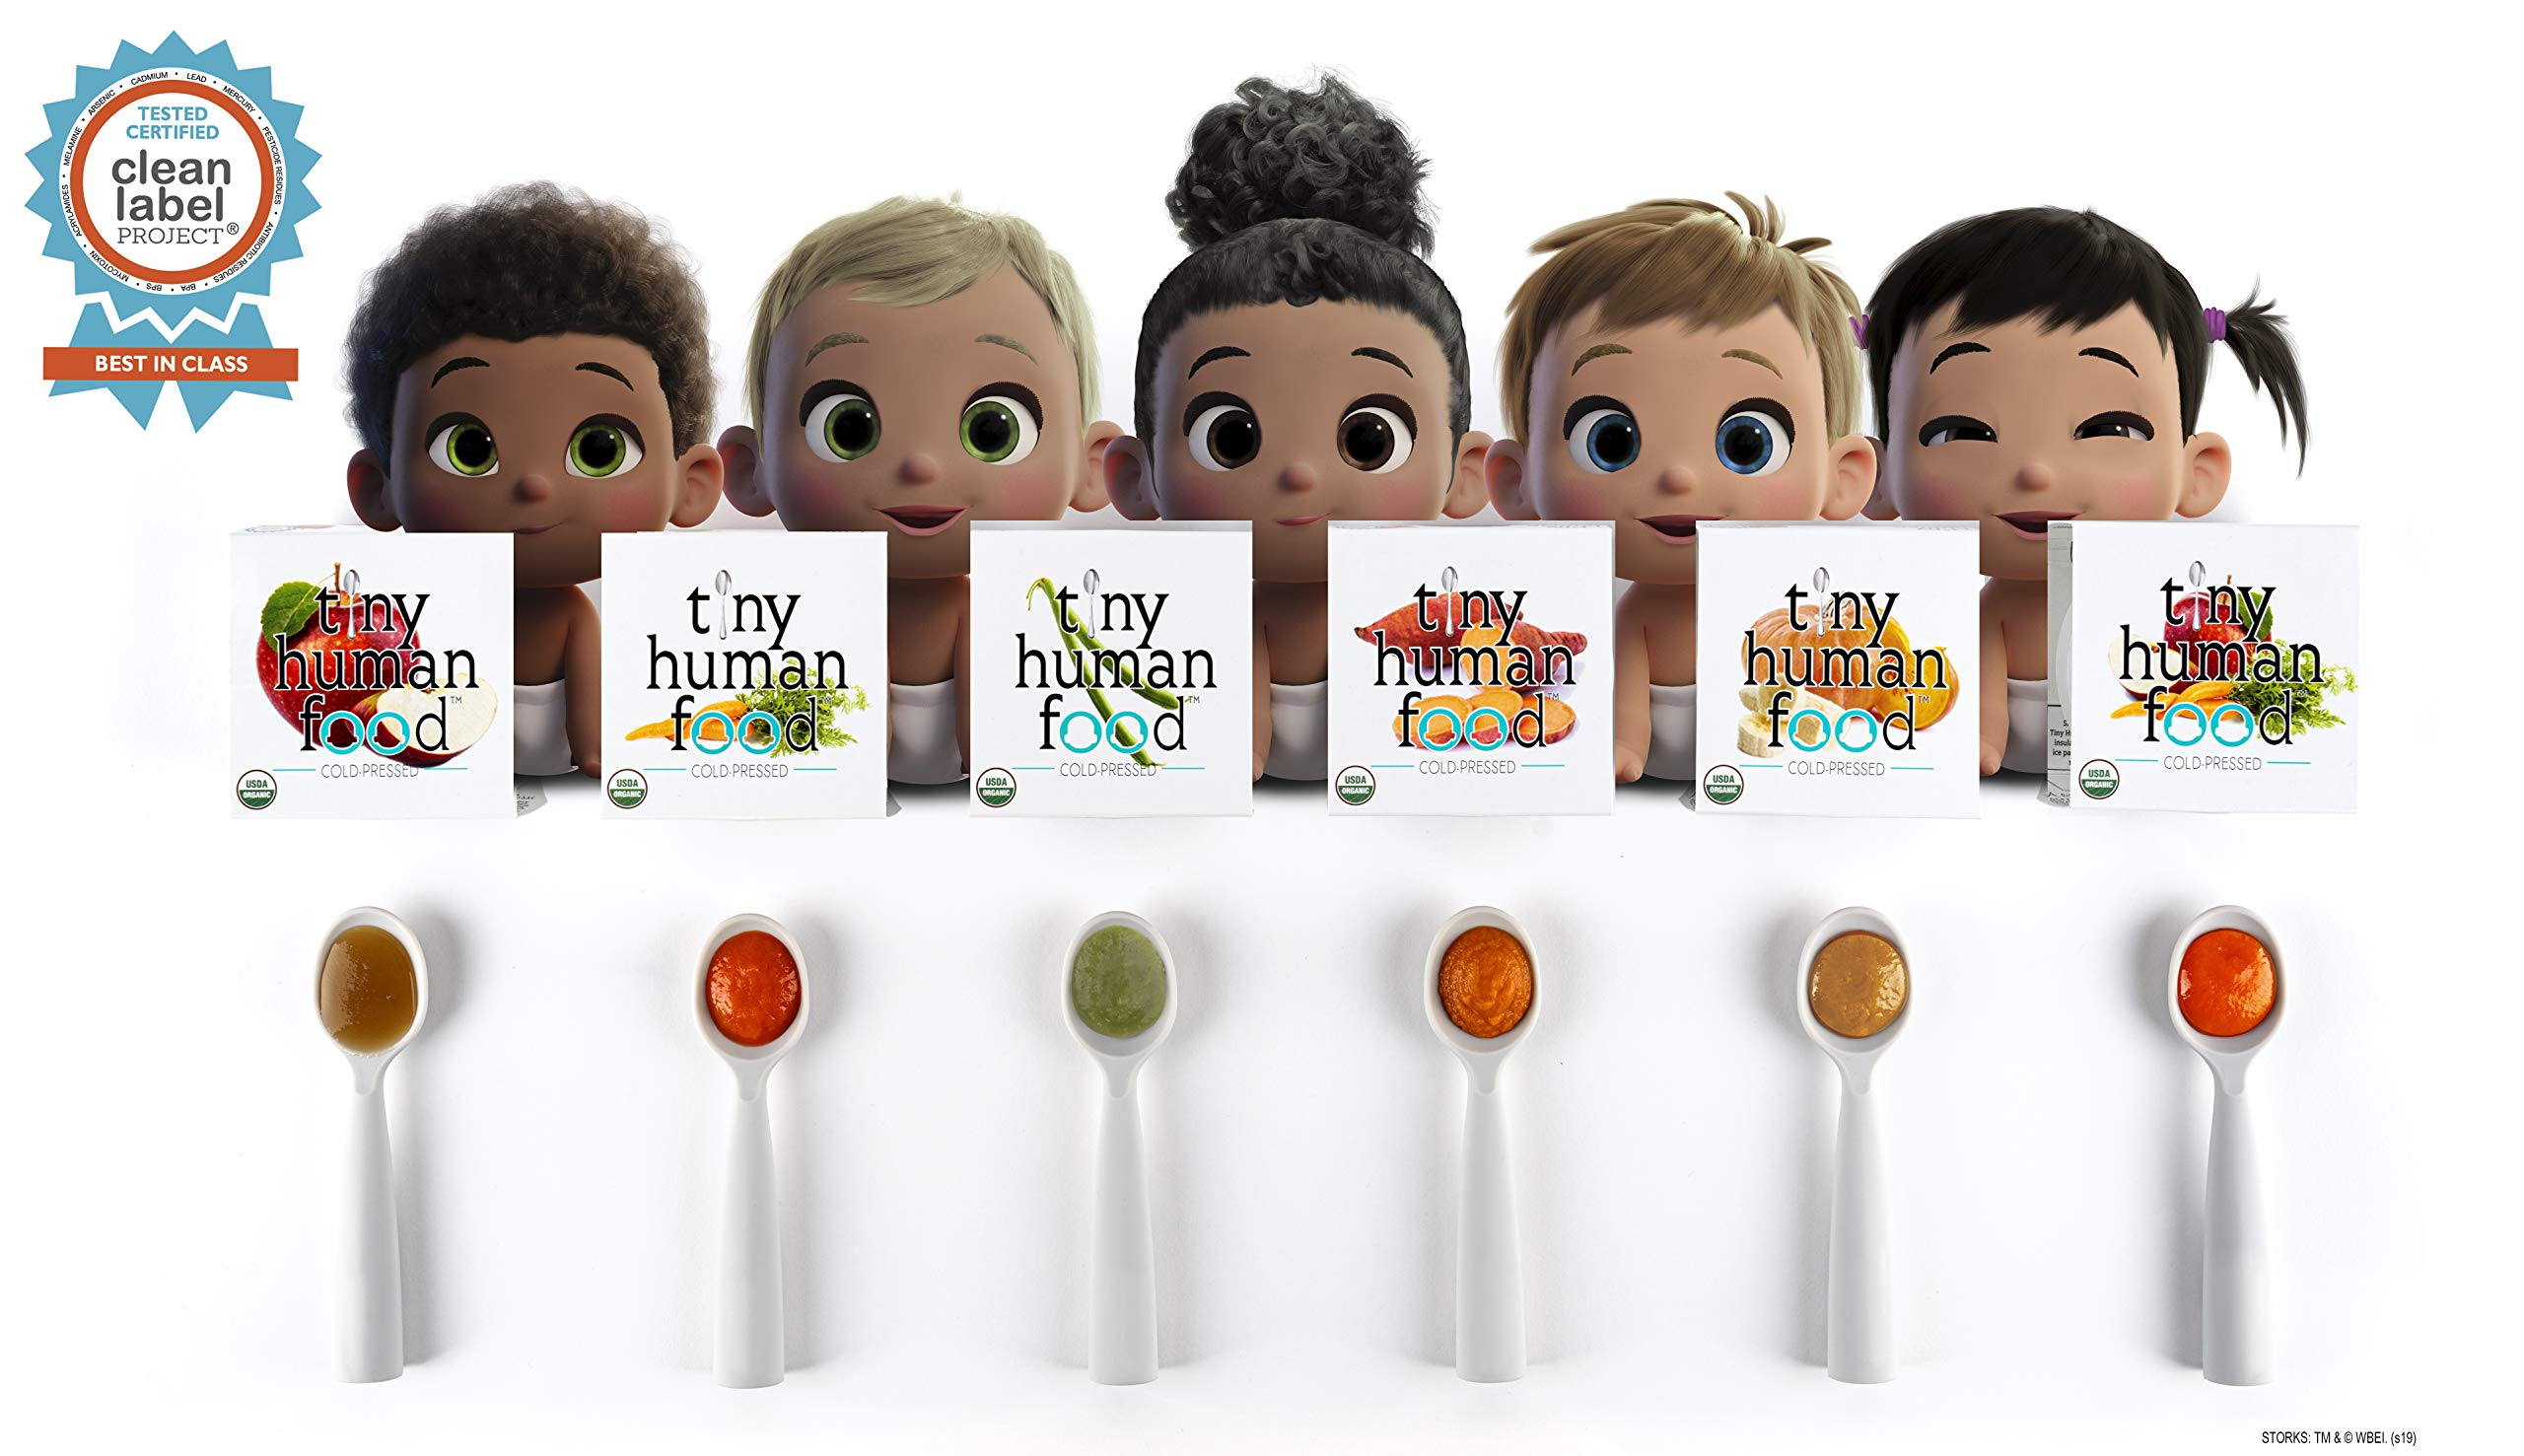 Fresh, Cold-Pressed, Organic Baby Food - Tiny Human Food - Curious Nibbler Sample Pack (6) 2PKS (12+ Meals) by Tiny Human Food